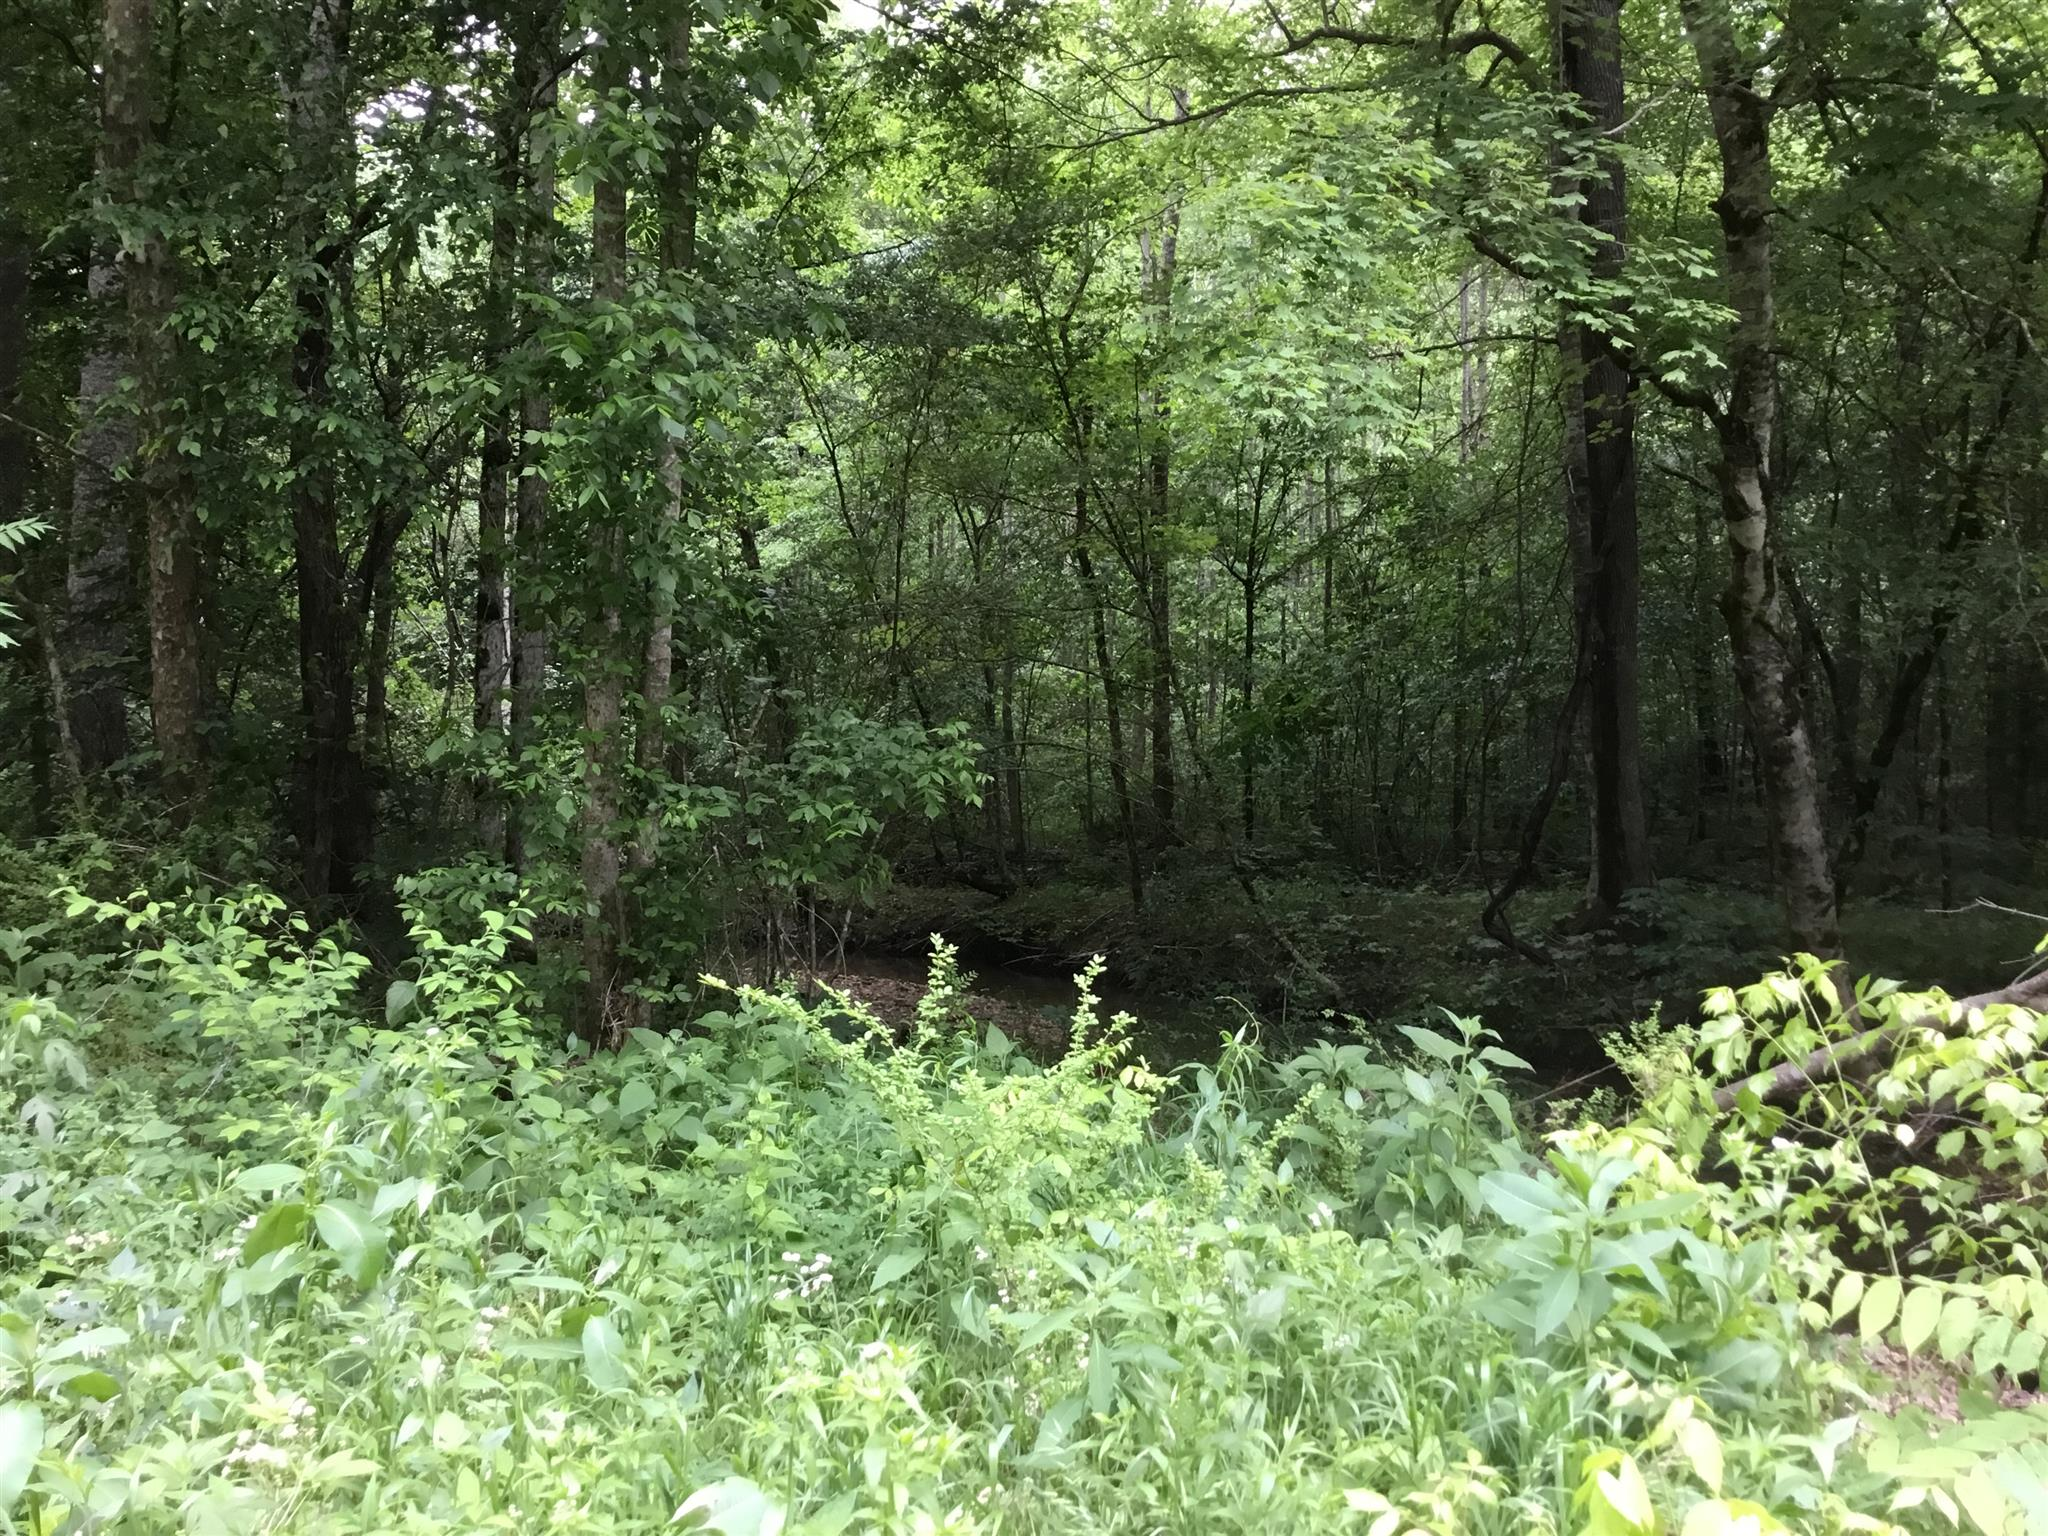 0 Teal Hollow Rd, Fayetteville, TN 37334 - Fayetteville, TN real estate listing